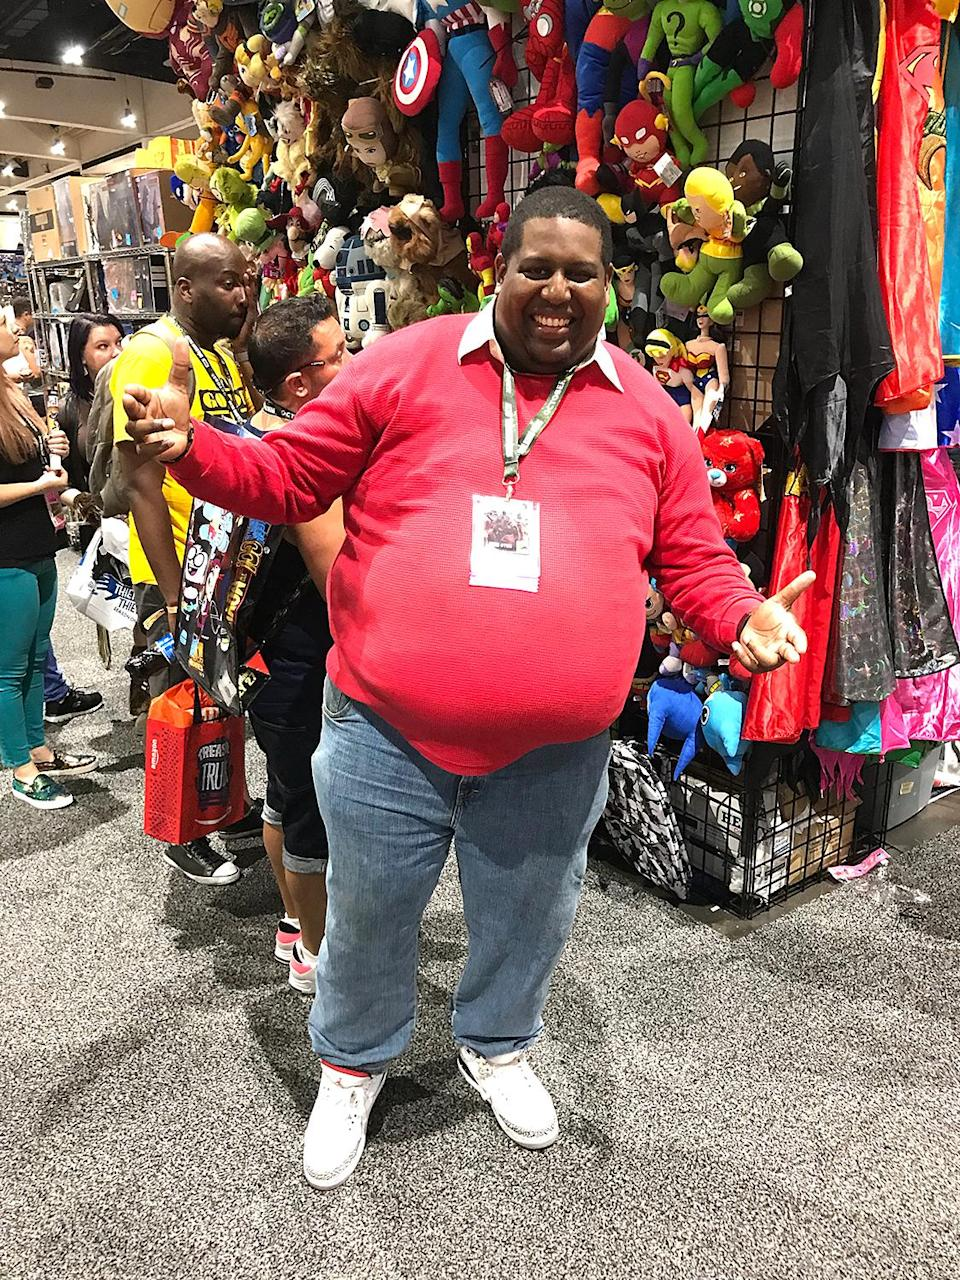 <p>Cosplayer dressed as Fat Albert from <i>Fat Albert</i> and the Cosby Kids at Comic-Con International on July 21, 2018, in San Diego. (Photo: Angela Kim/Yahoo Entertainment) </p>